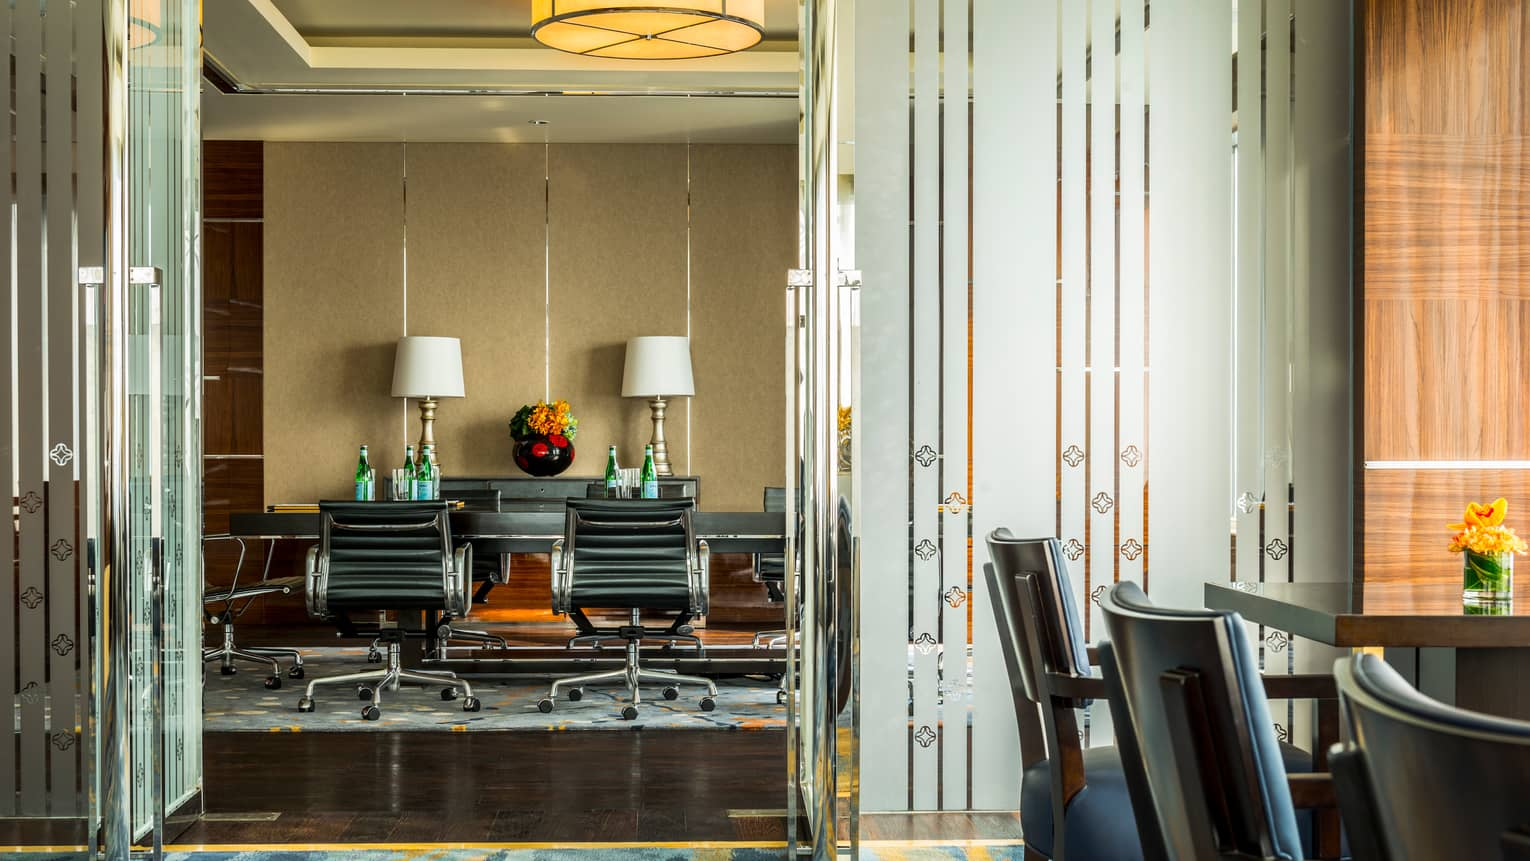 Executive Club Lounge boardroom, leather chairs on wheels around meeting tables